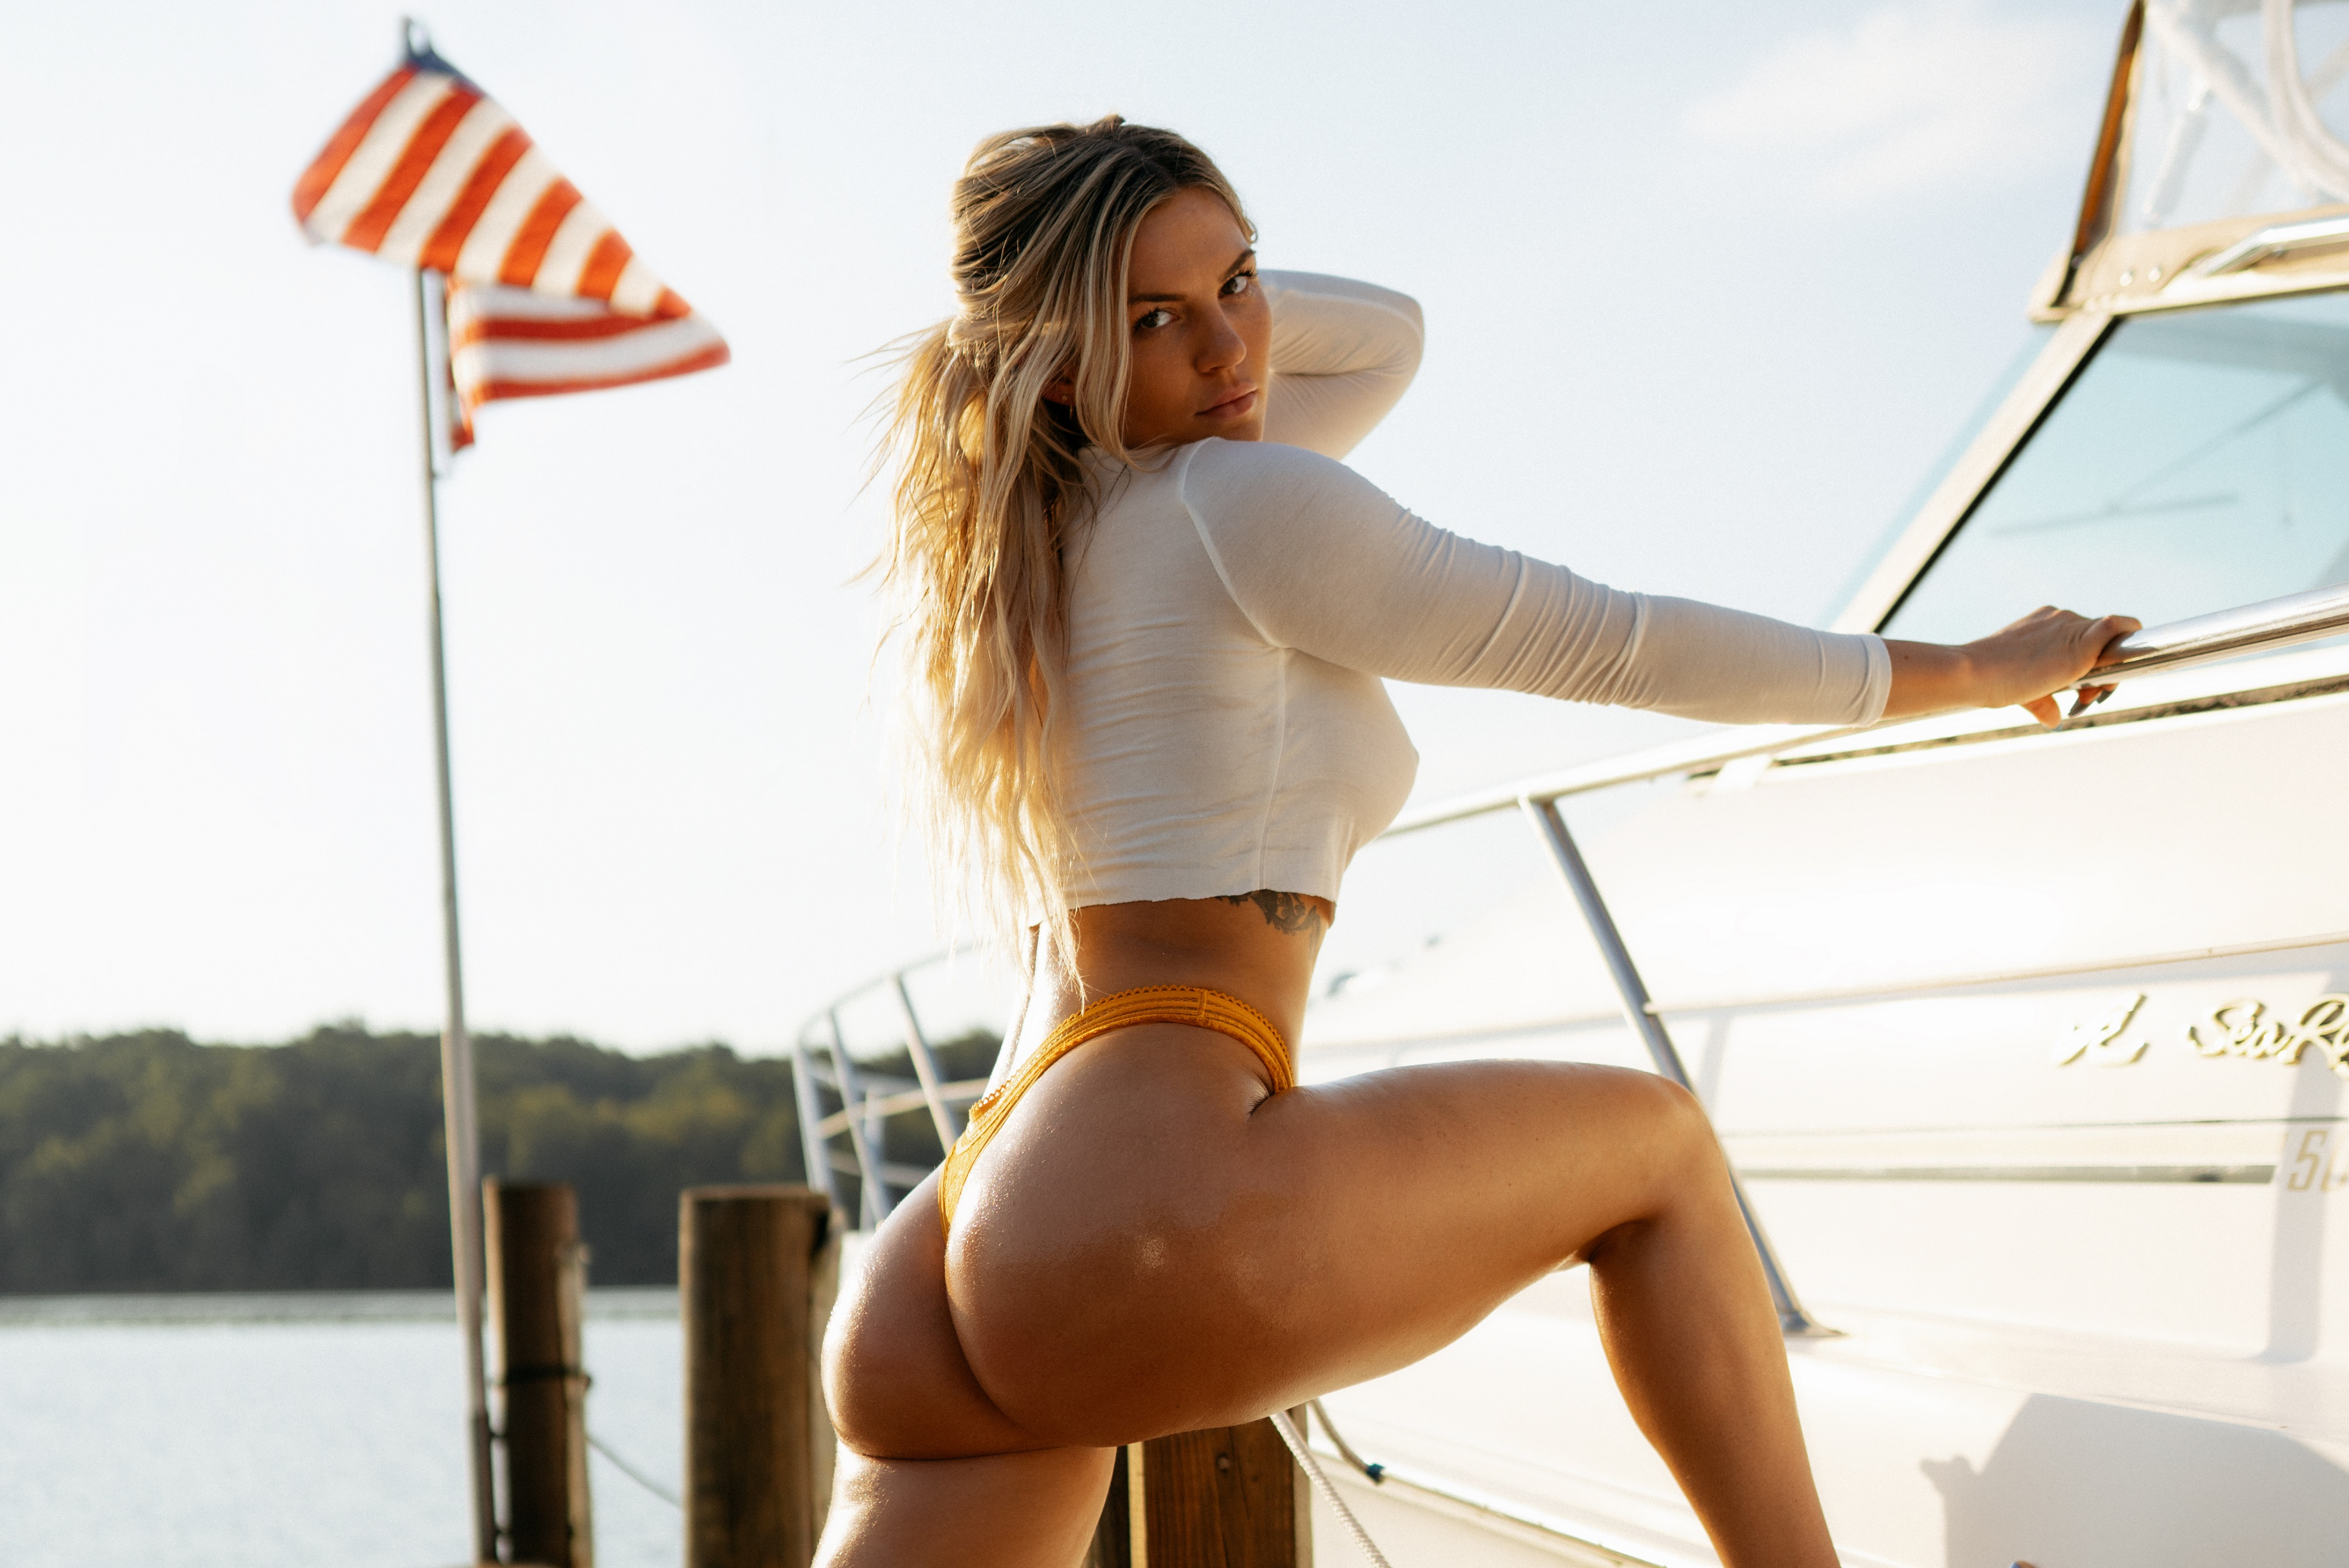 People 4000x2670 women model blonde long hair looking at viewer hand on head white tops nipple bulge panties yellow panties thong underwear ass curvy thick thigh thighs body oil tanned tattoo inked girls butt floss yachts yacht lake flag Stars and Stripes American flag side view no bra summer outdoors women outdoors Mariah Maverick